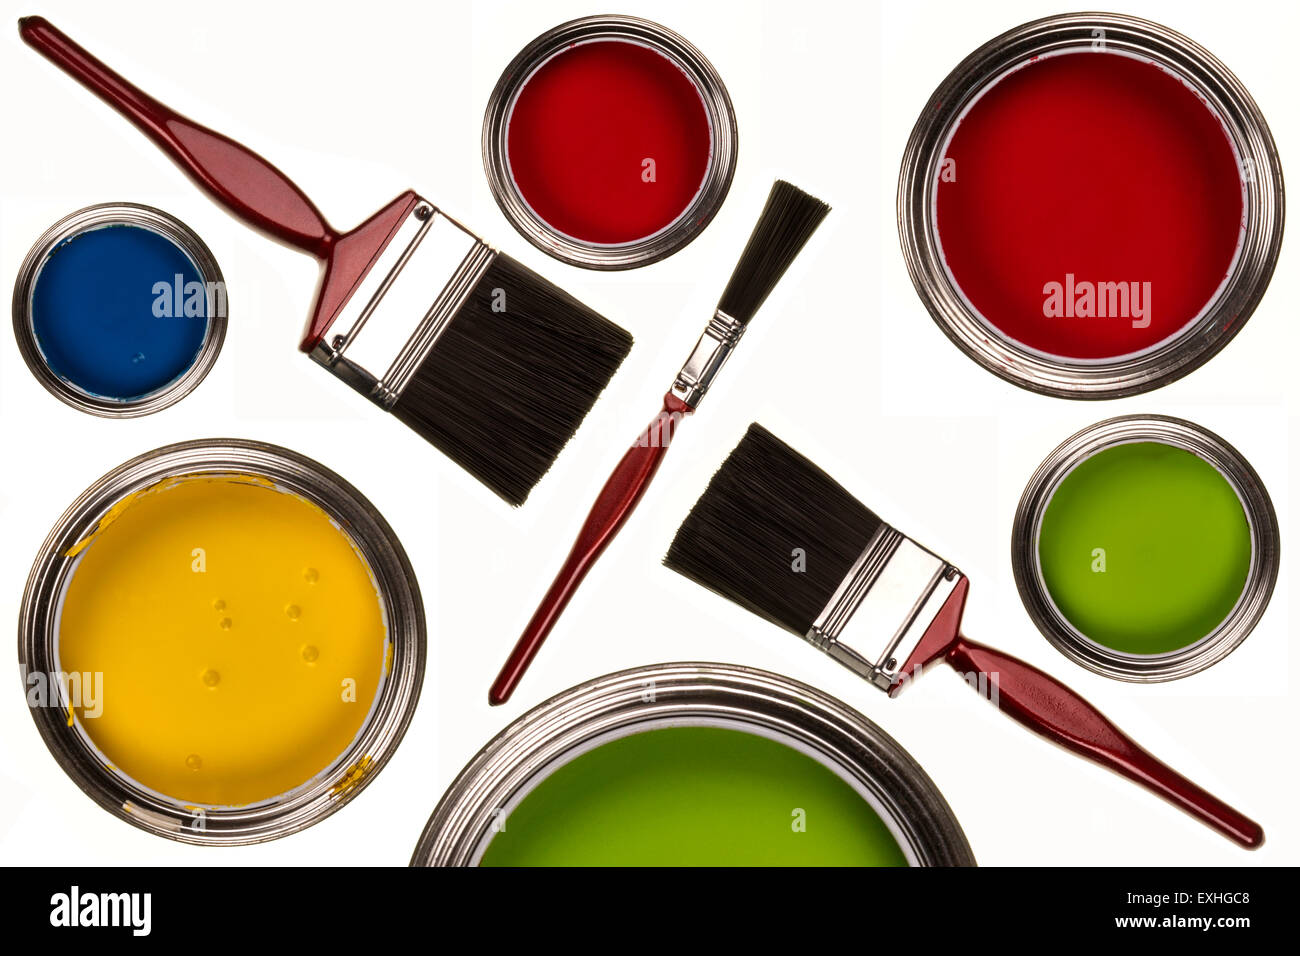 Selection of paints and paintbrushes - isolated - Stock Image